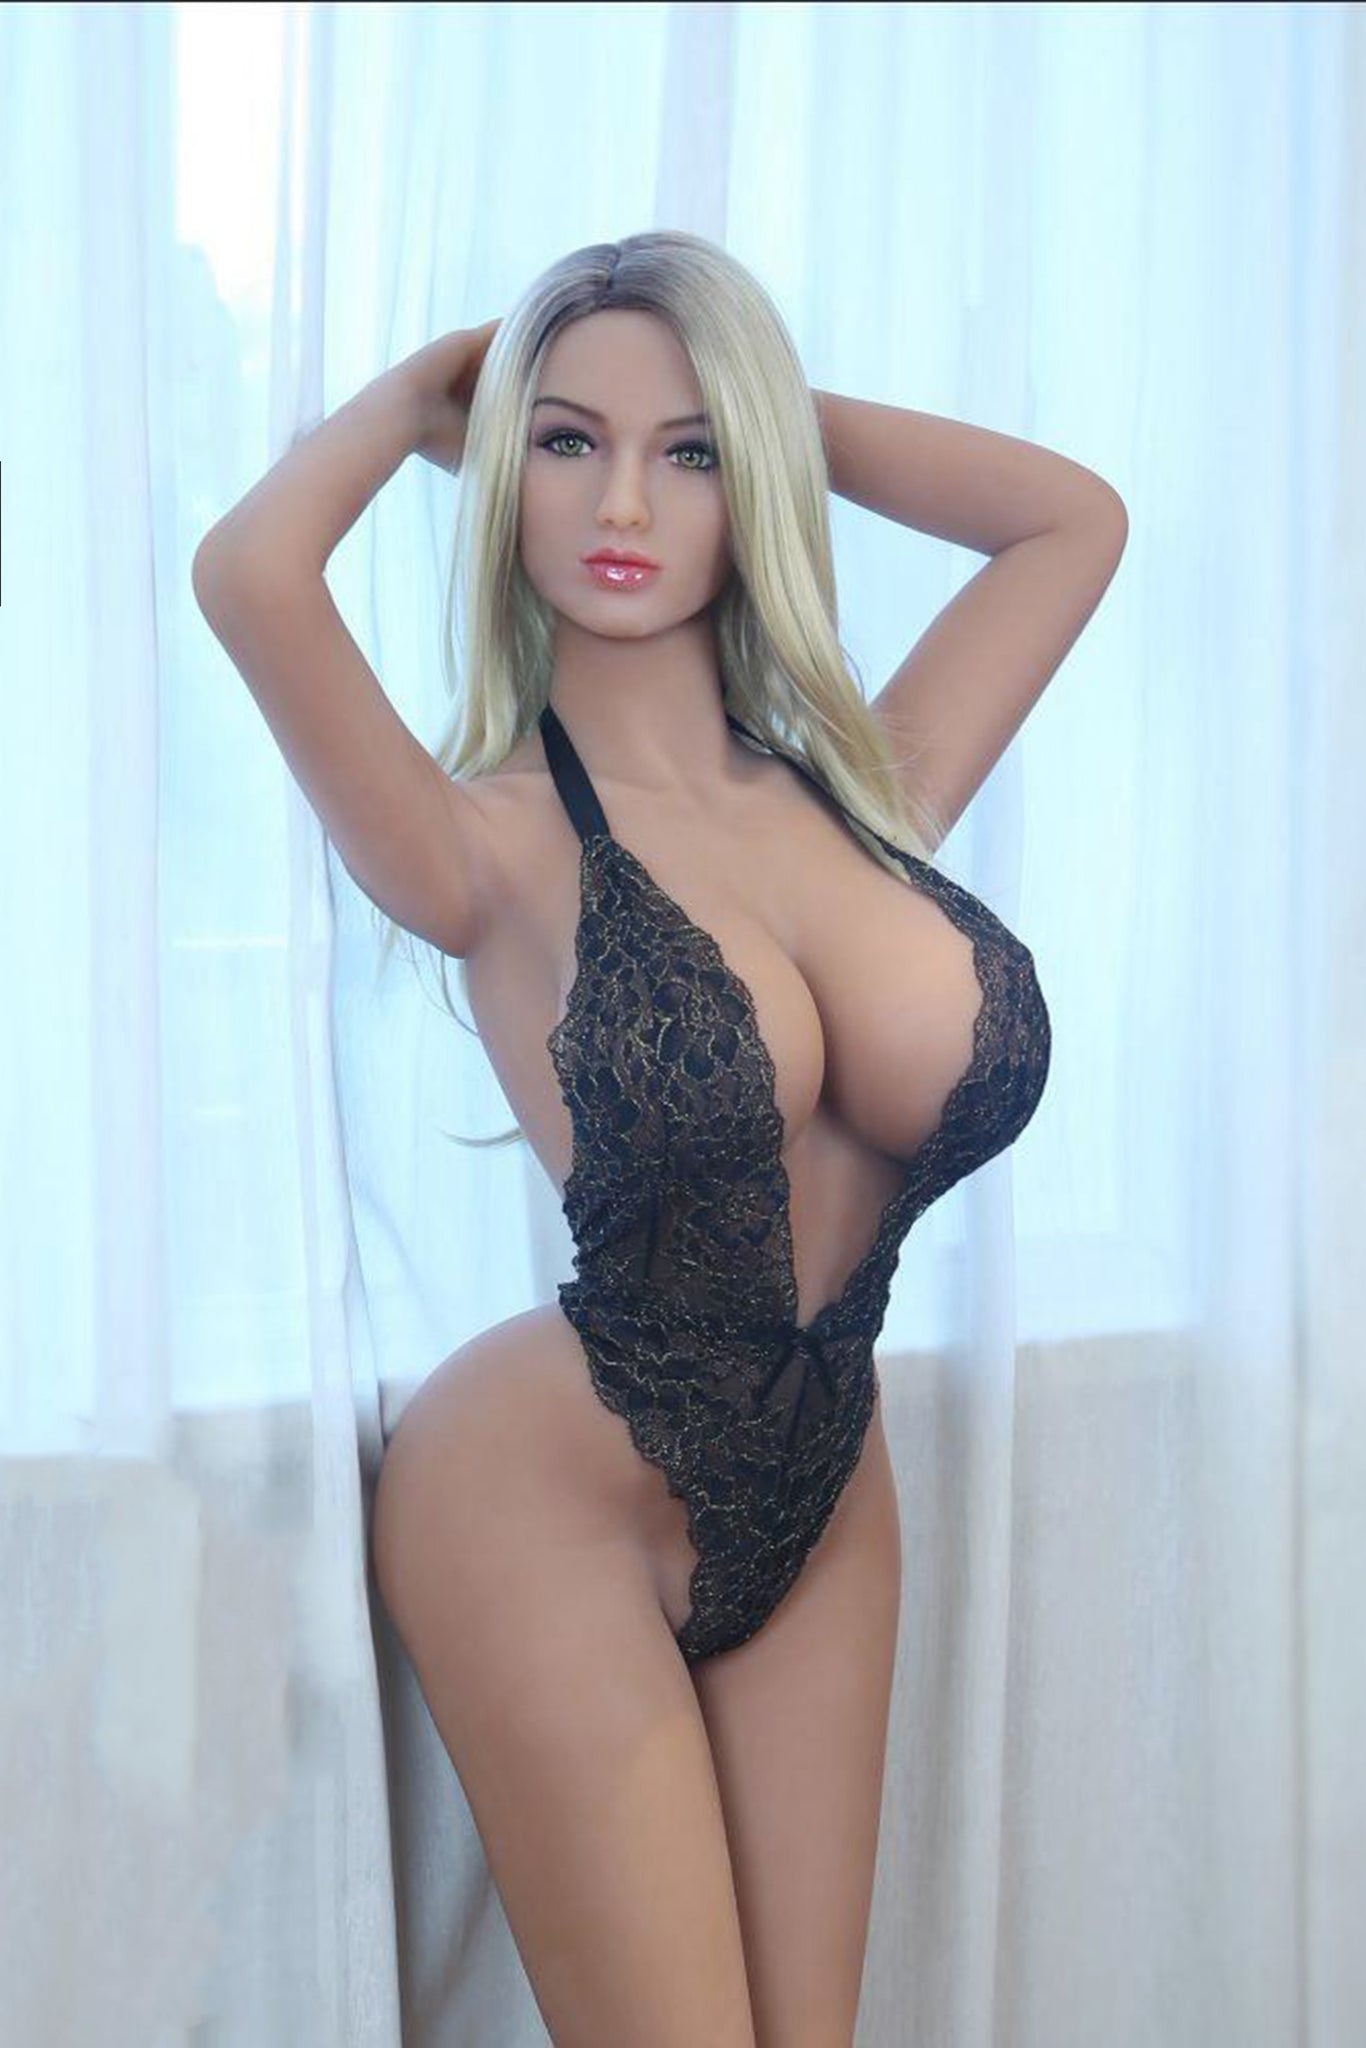 Buy Sex doll with big boobs - Pamela 170cm